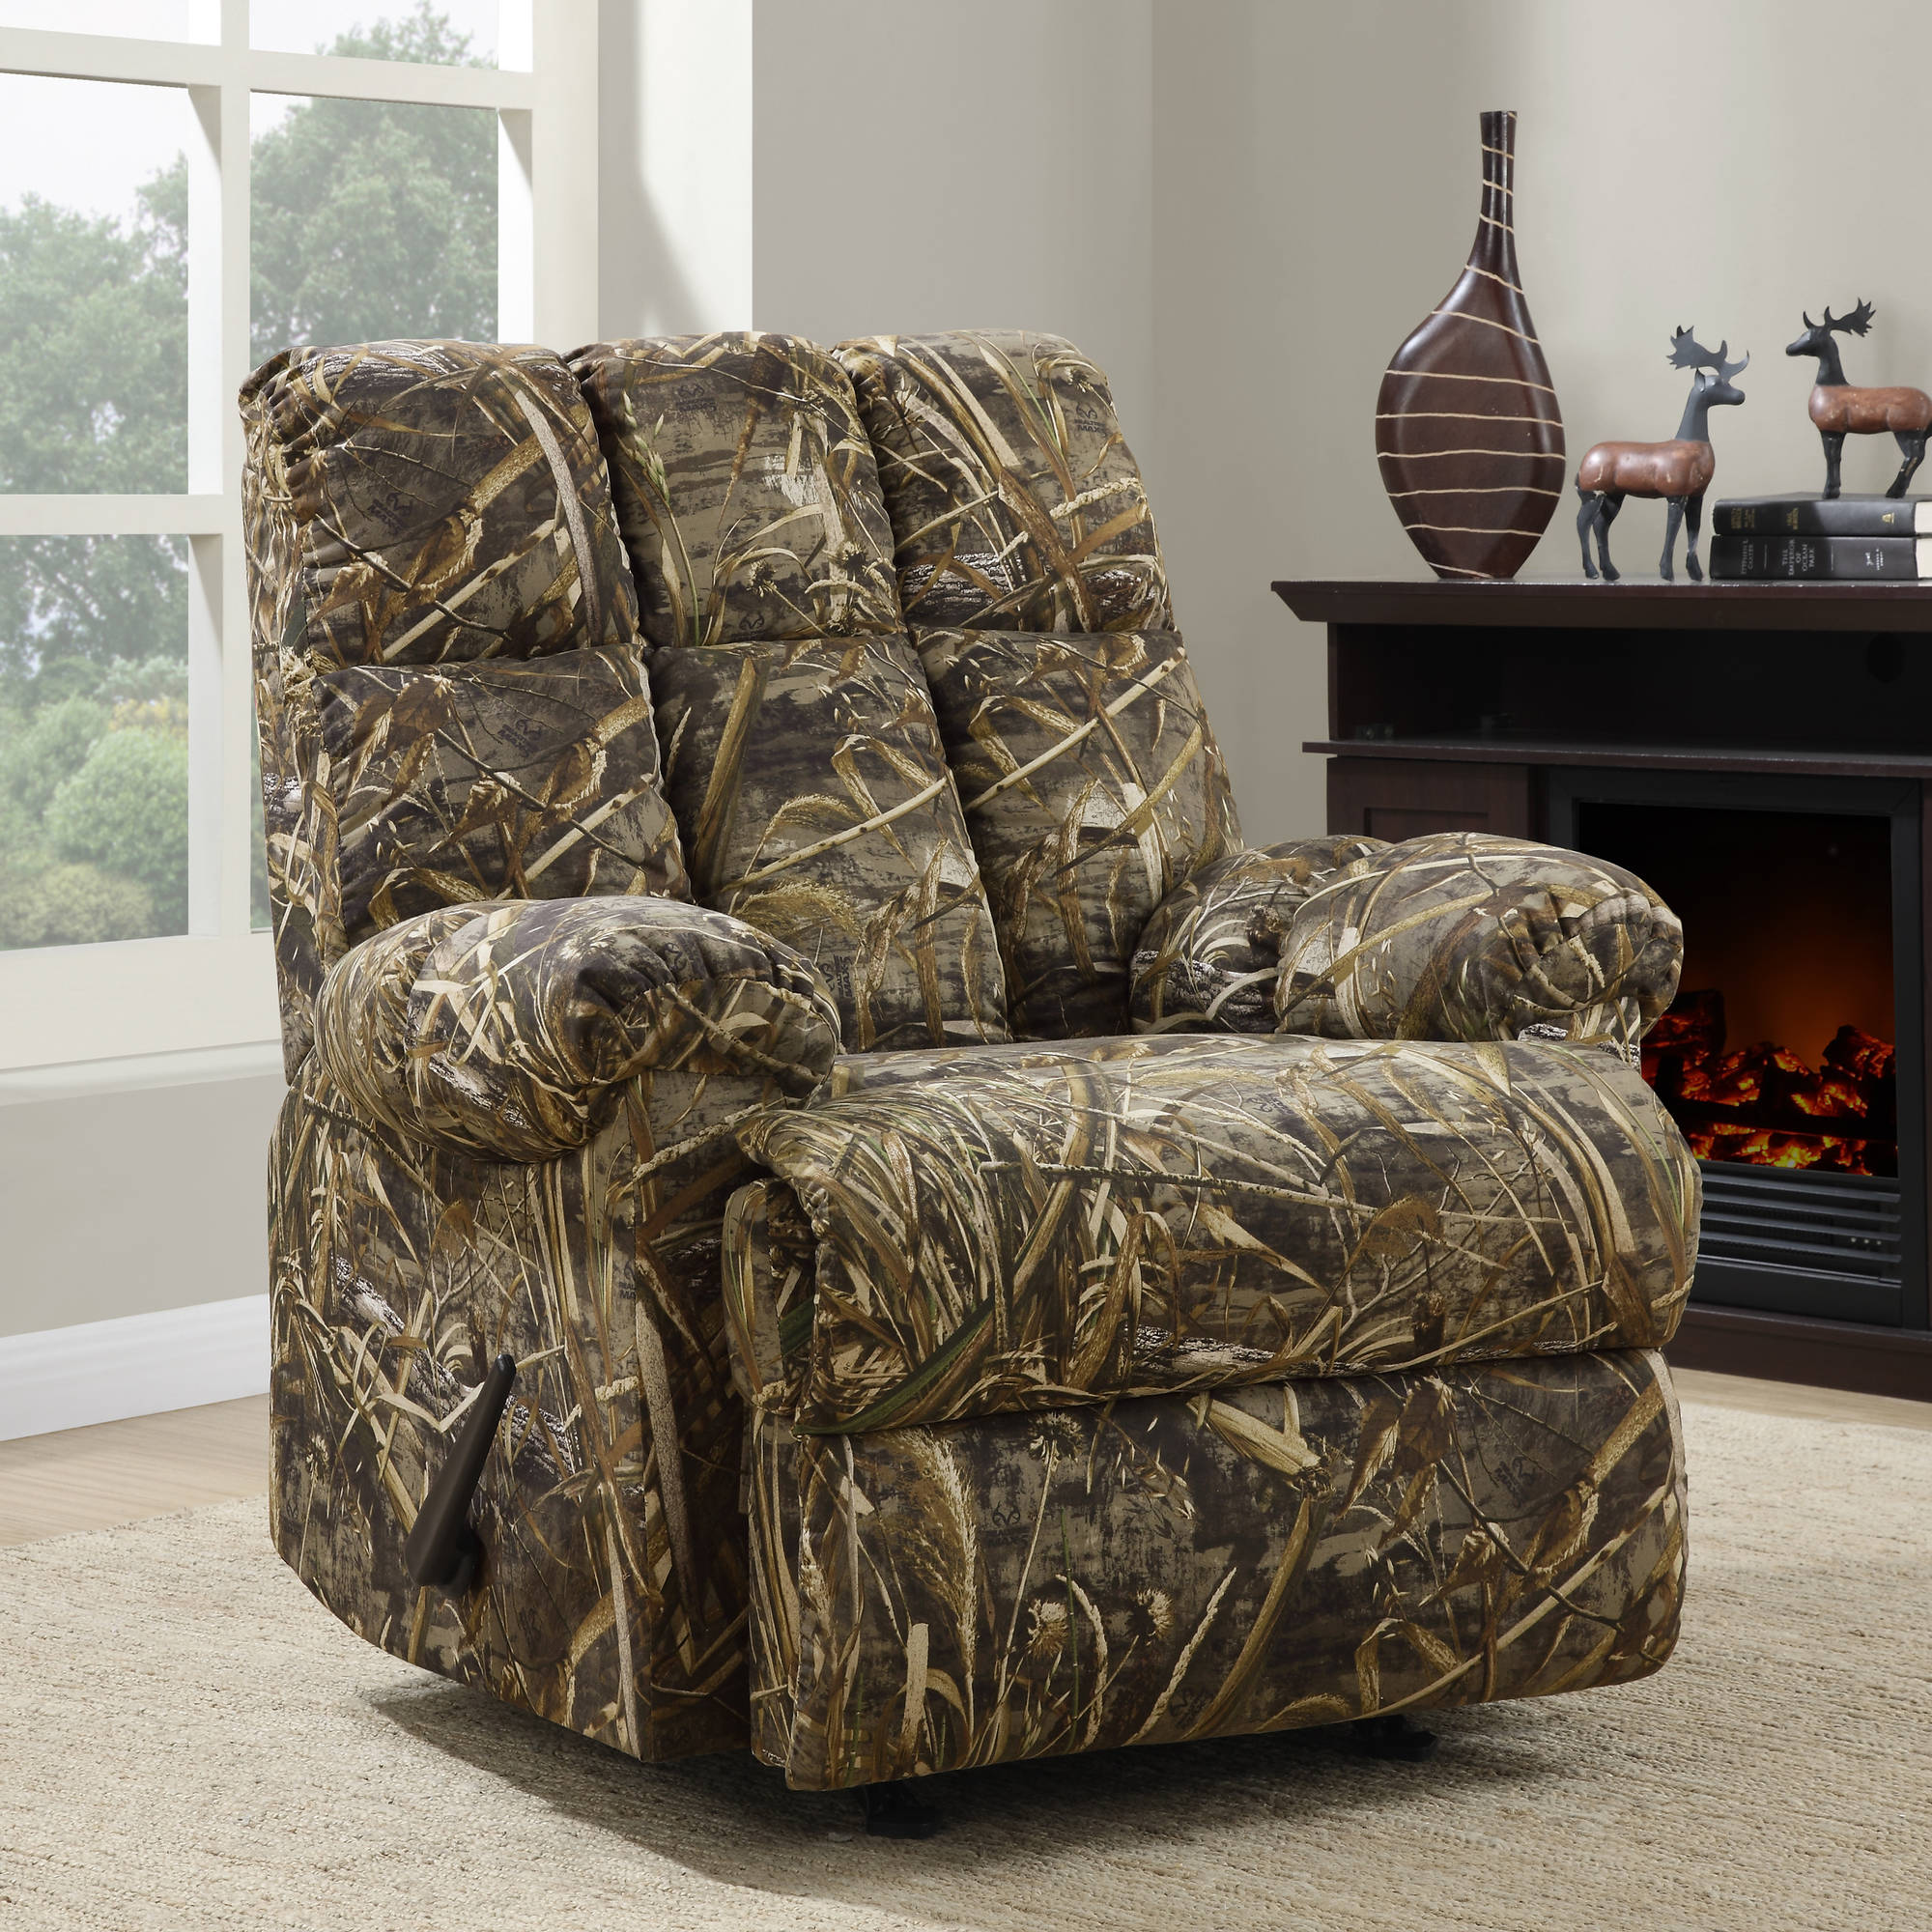 chair fabric large chairs buy room recliners glider rocker astonishing size and a swivel half of recliner living small